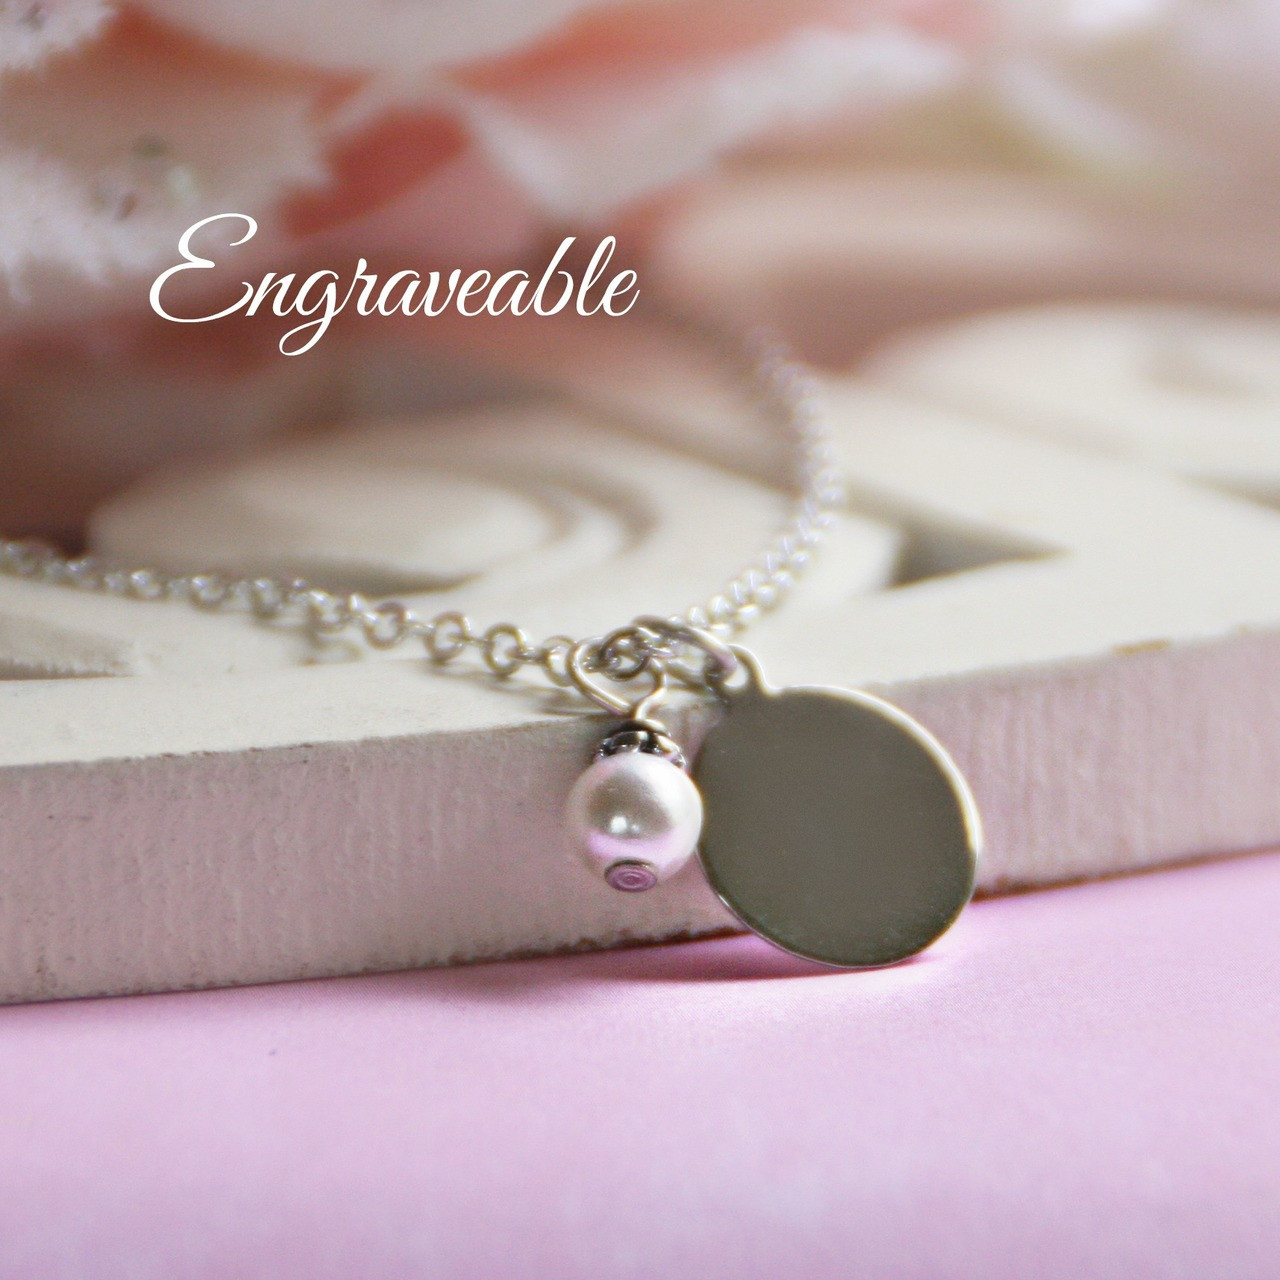 EG-1  Engraveable Stainless Disk with Pearl Necklace